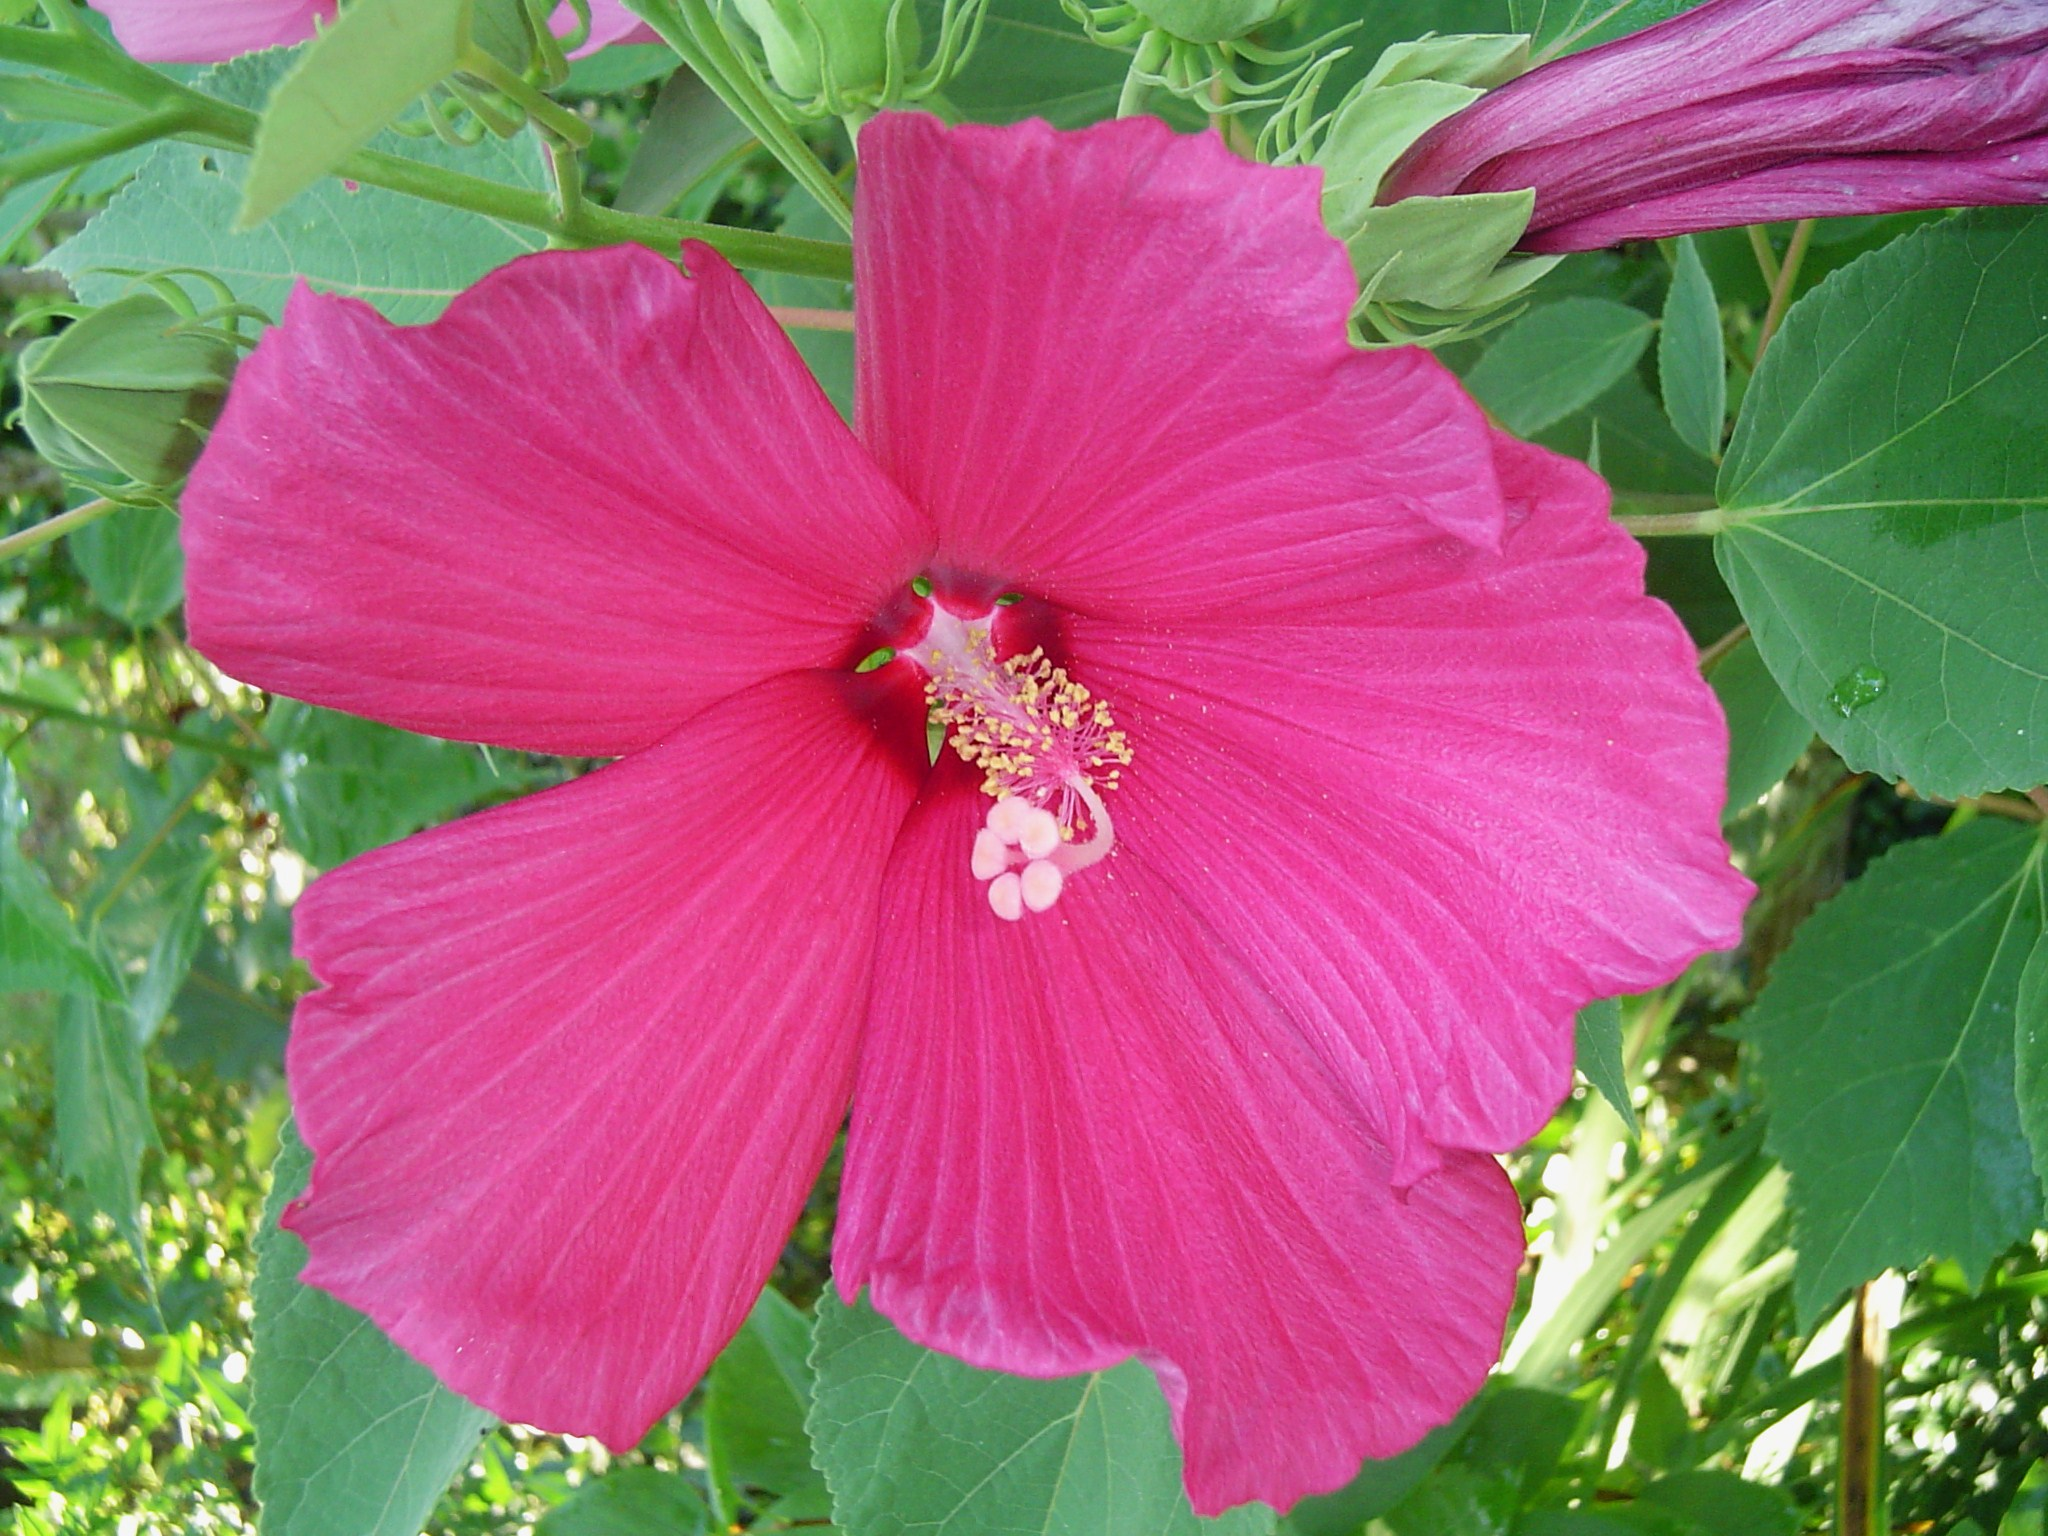 Hardy hibiscus forest garden july 17 hibiscus 002 izmirmasajfo Choice Image